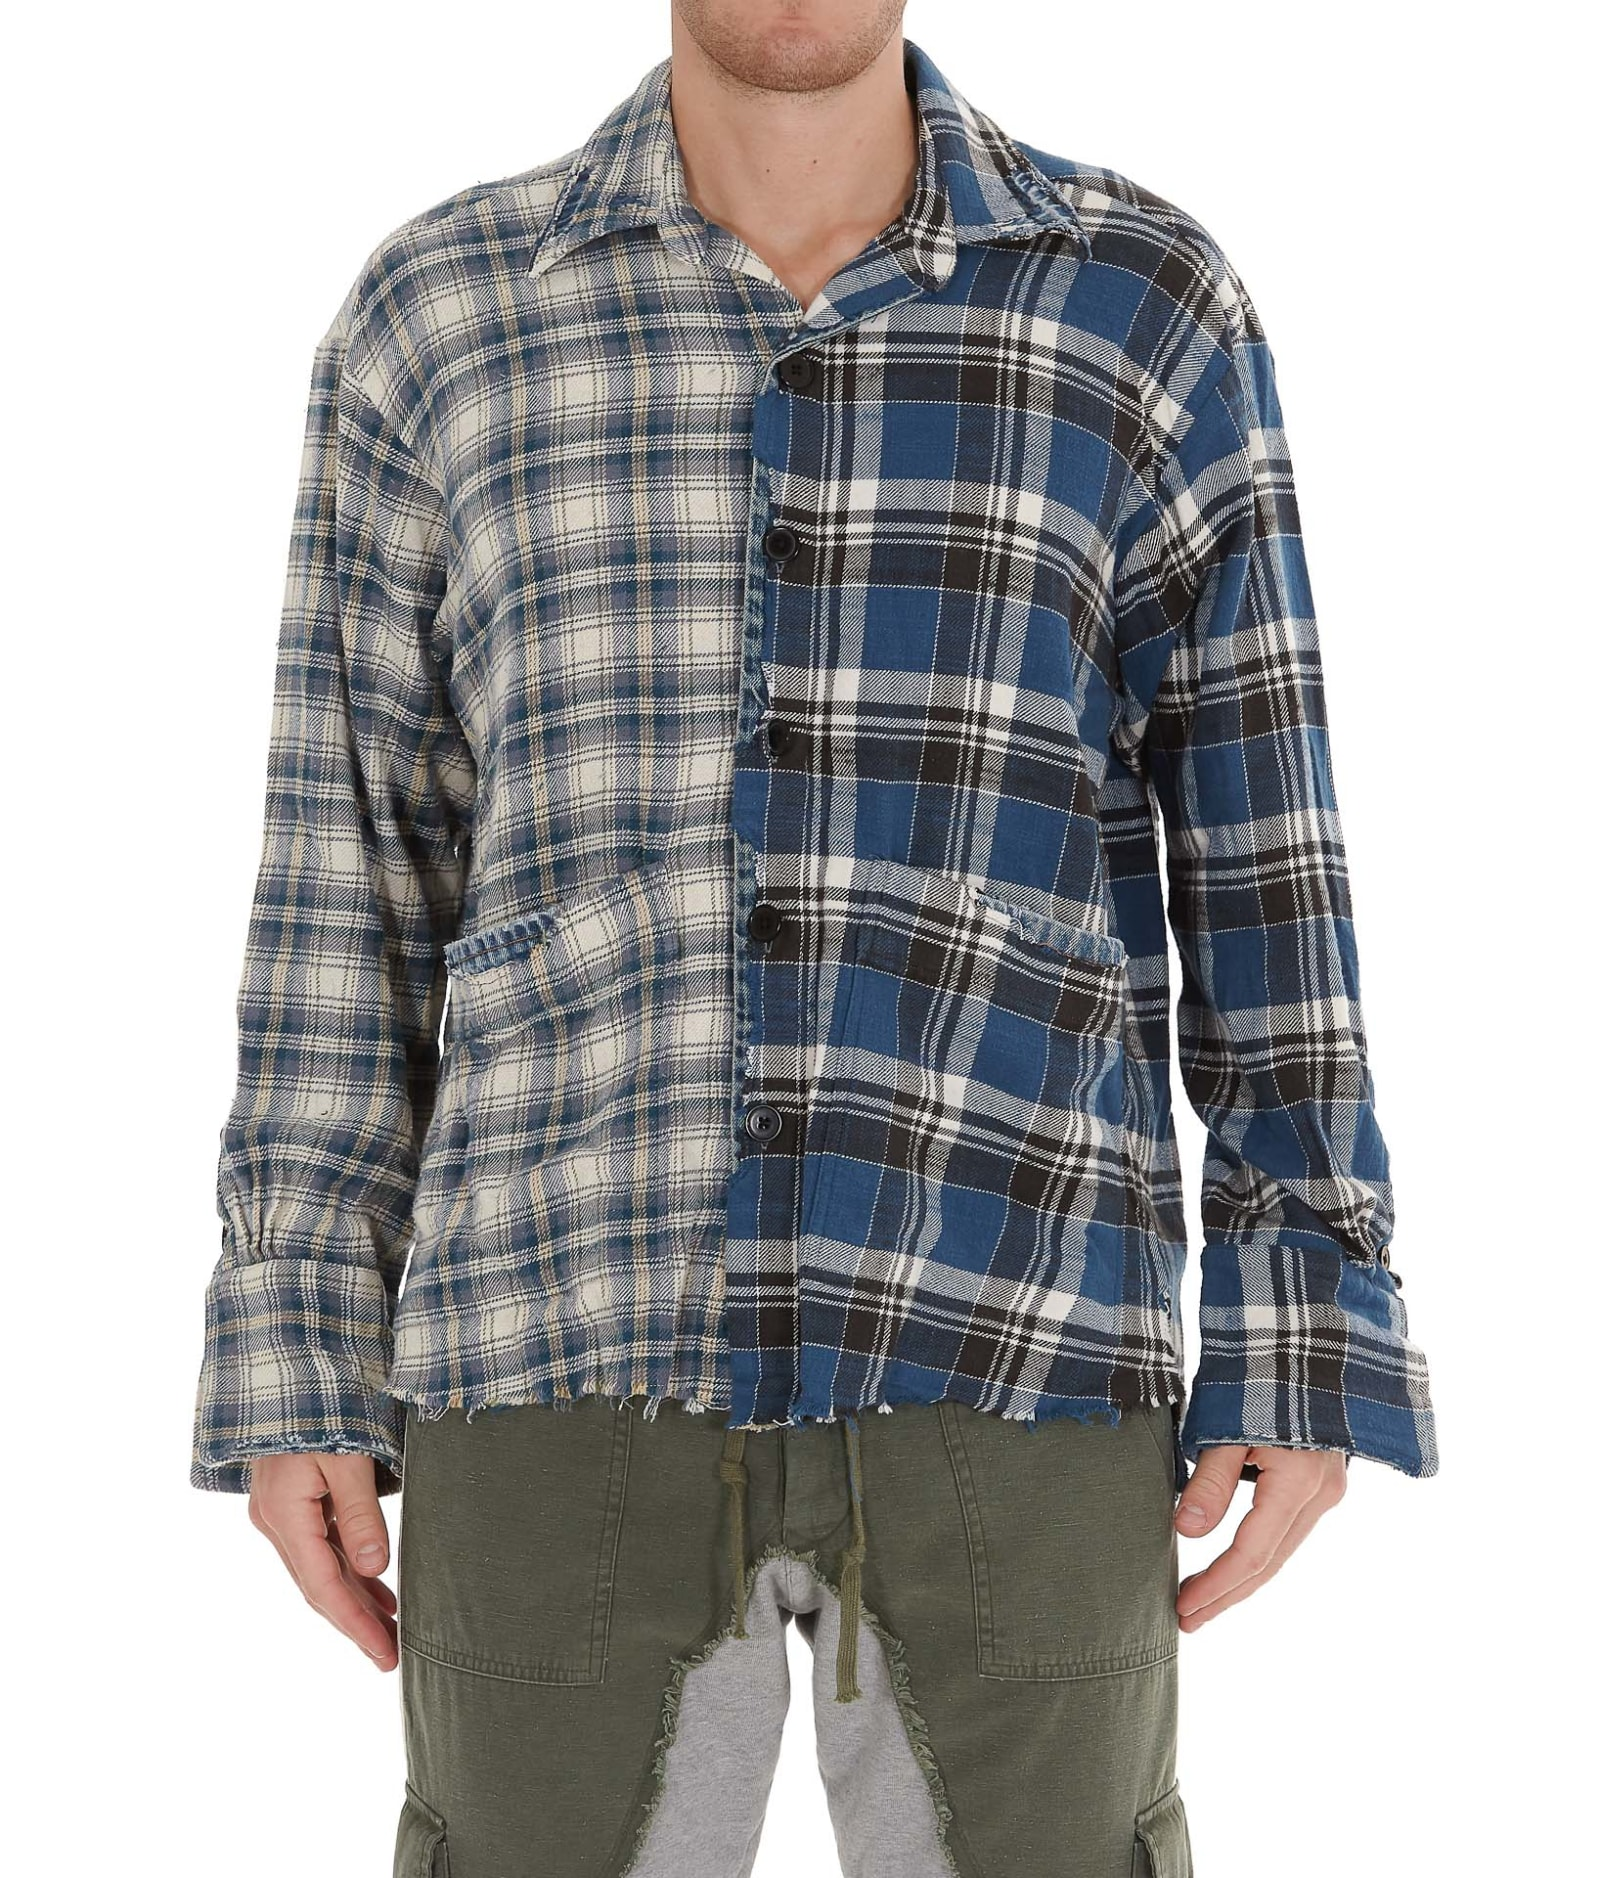 GREG LAUREN BOXY STUDIO SHIRT